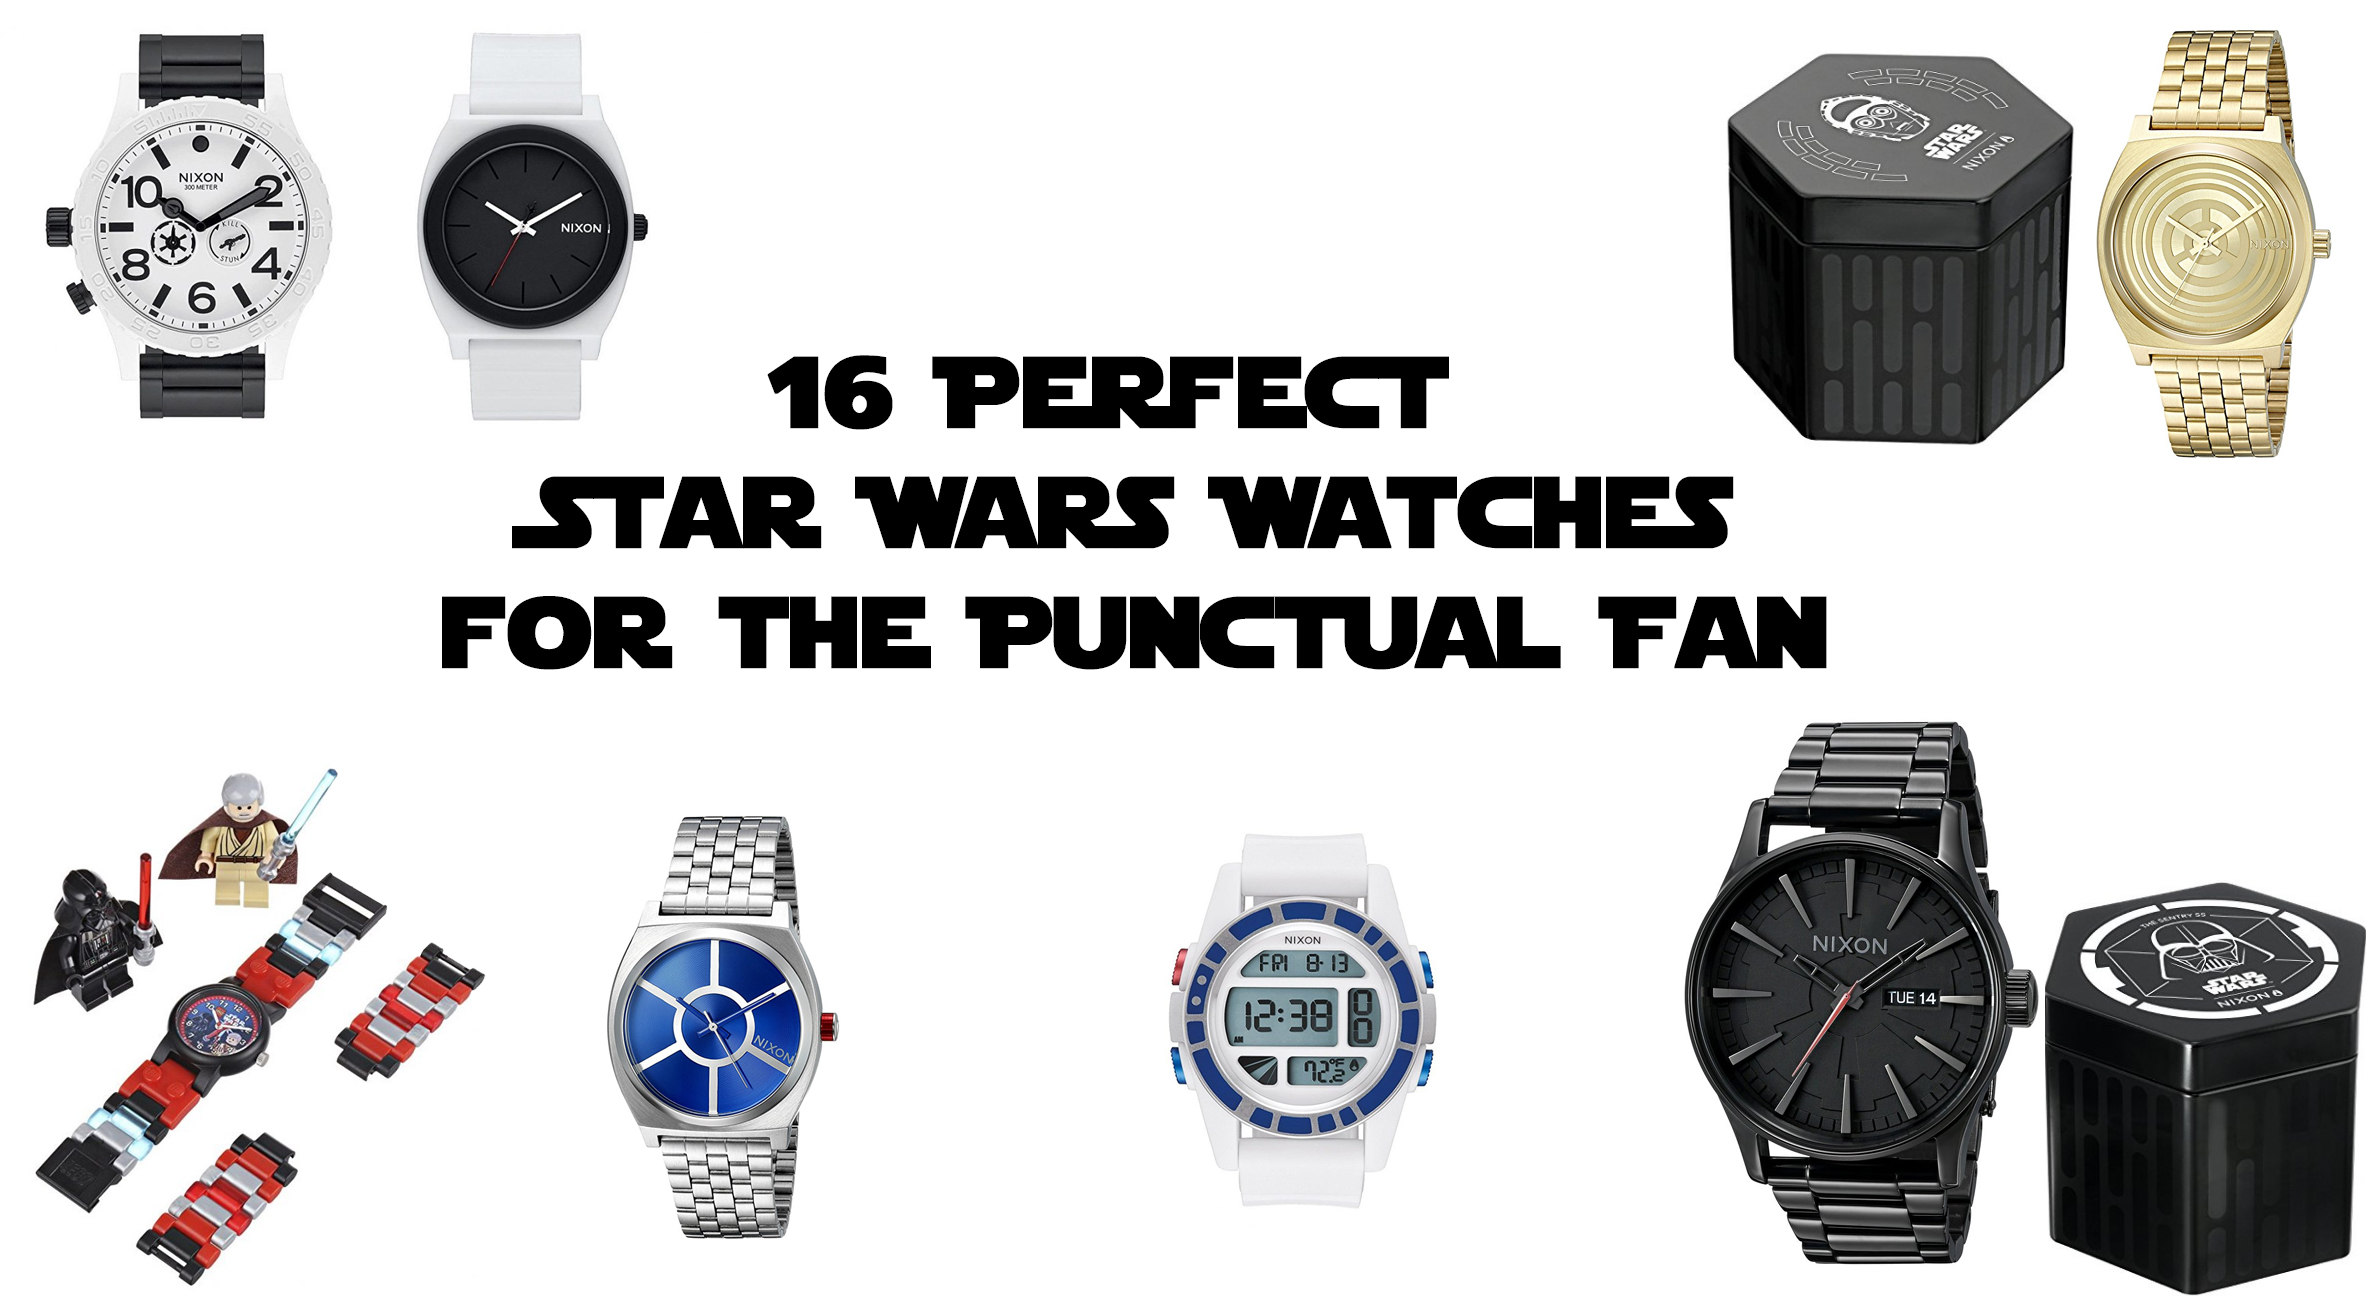 16 Perfect Star Wars Watches for the Punctual Fan